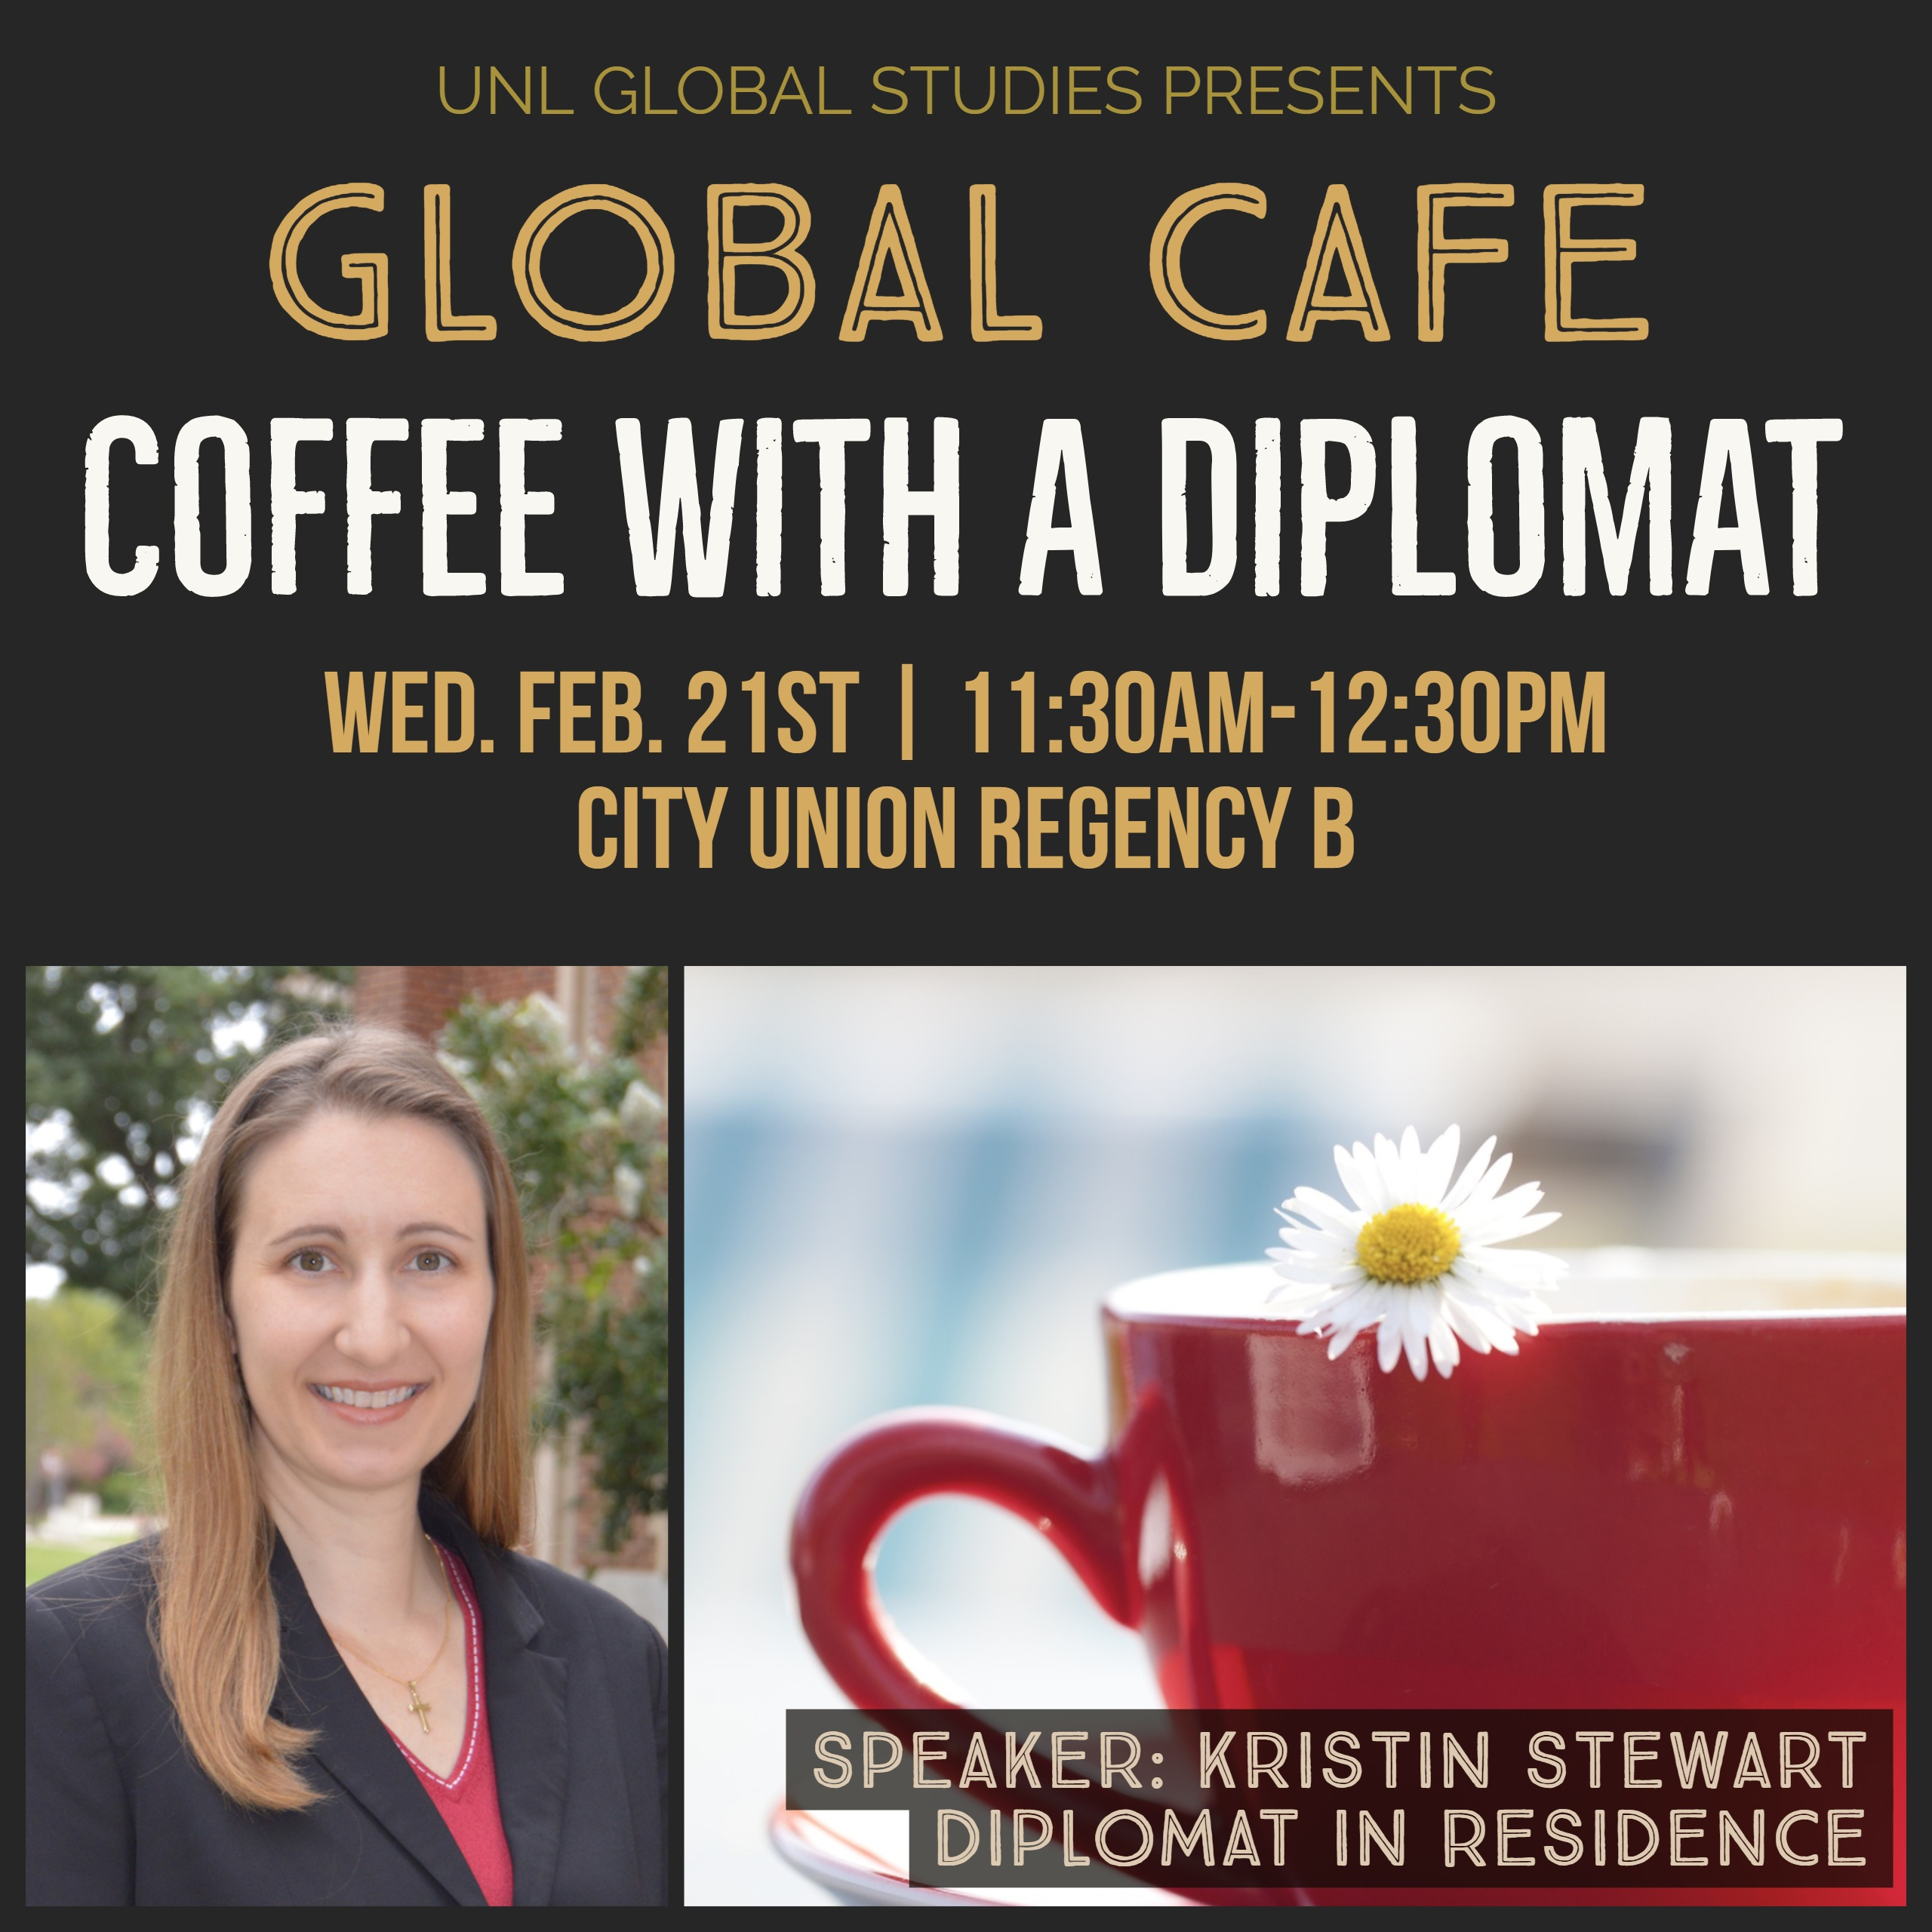 Global Cafe: Coffee with a Diplomat